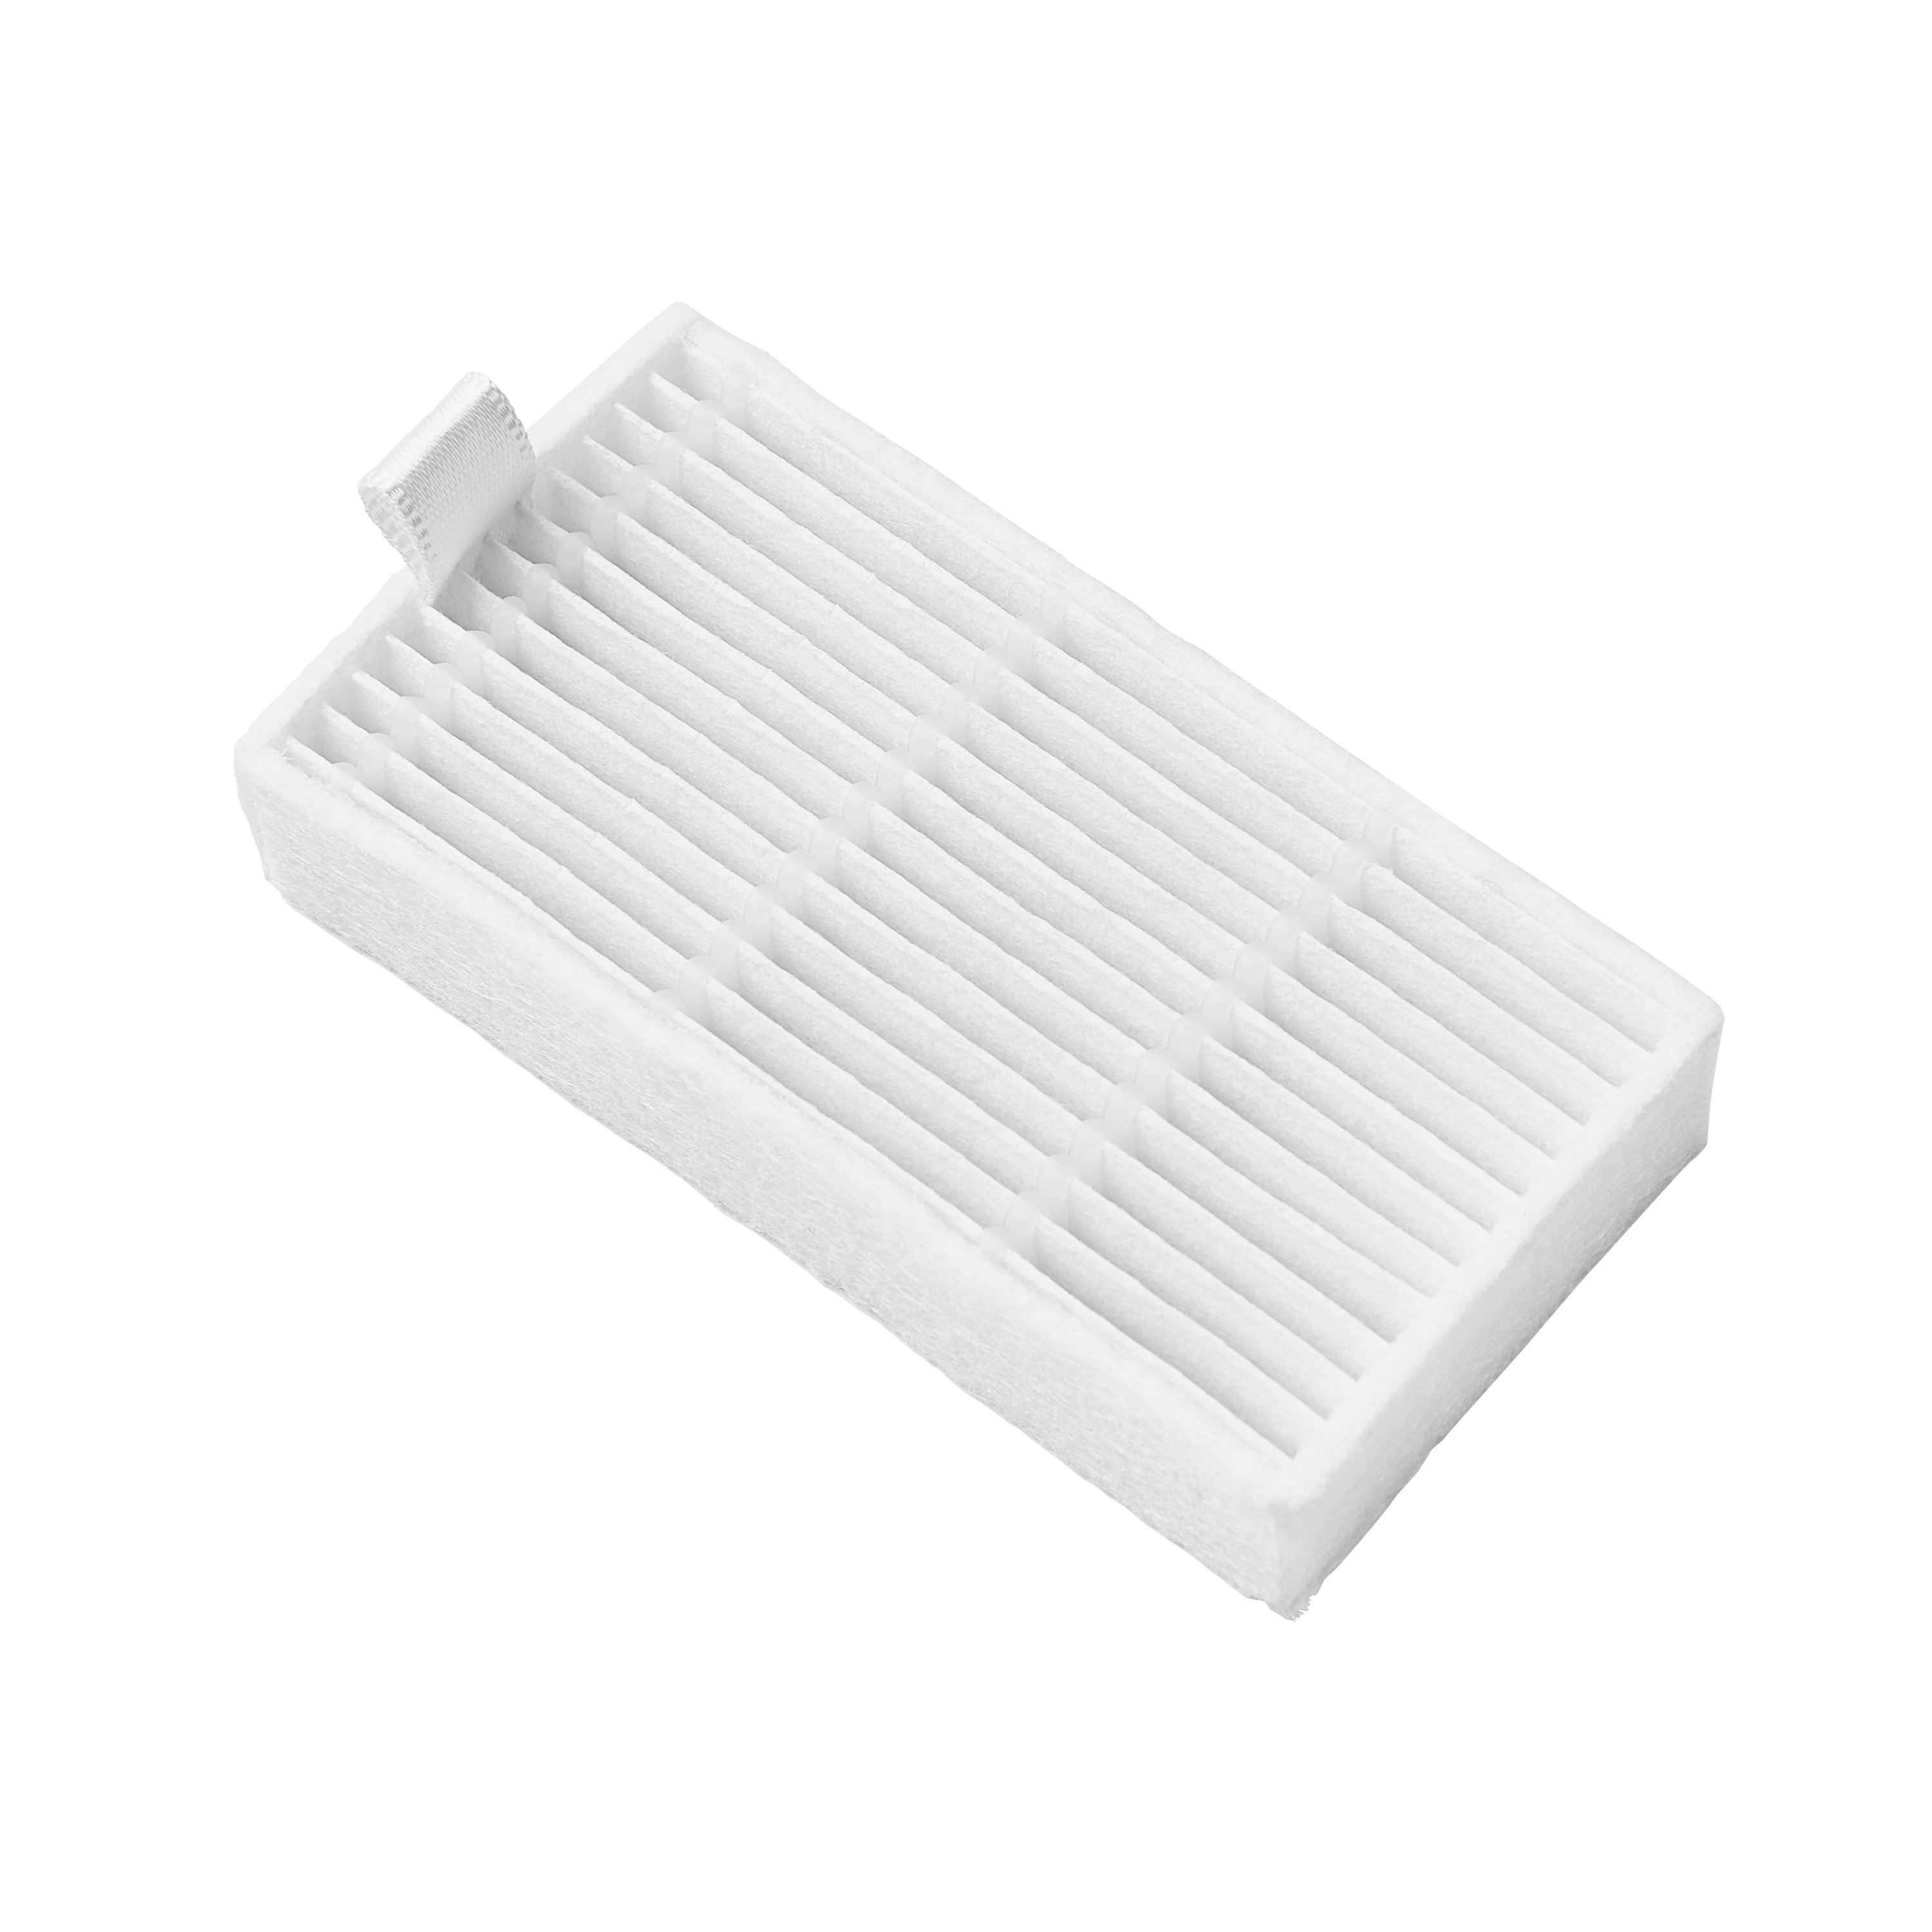 MEDION® EPA Filter voor robot stofzuigers | MD 16192 + MD 18500 + MD 18501 + MD 18600 + MD 19510 + MD 19511